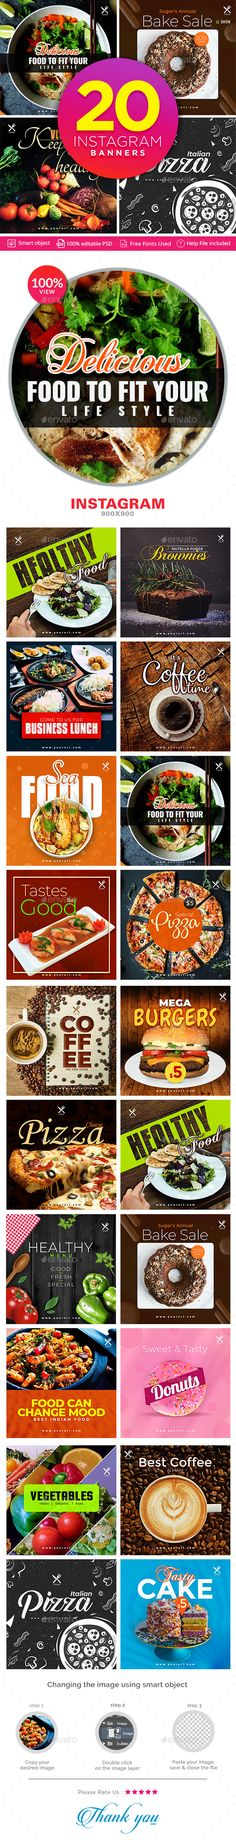 Food Instagram Templates - 20 Designs - Miscellaneous Social Media